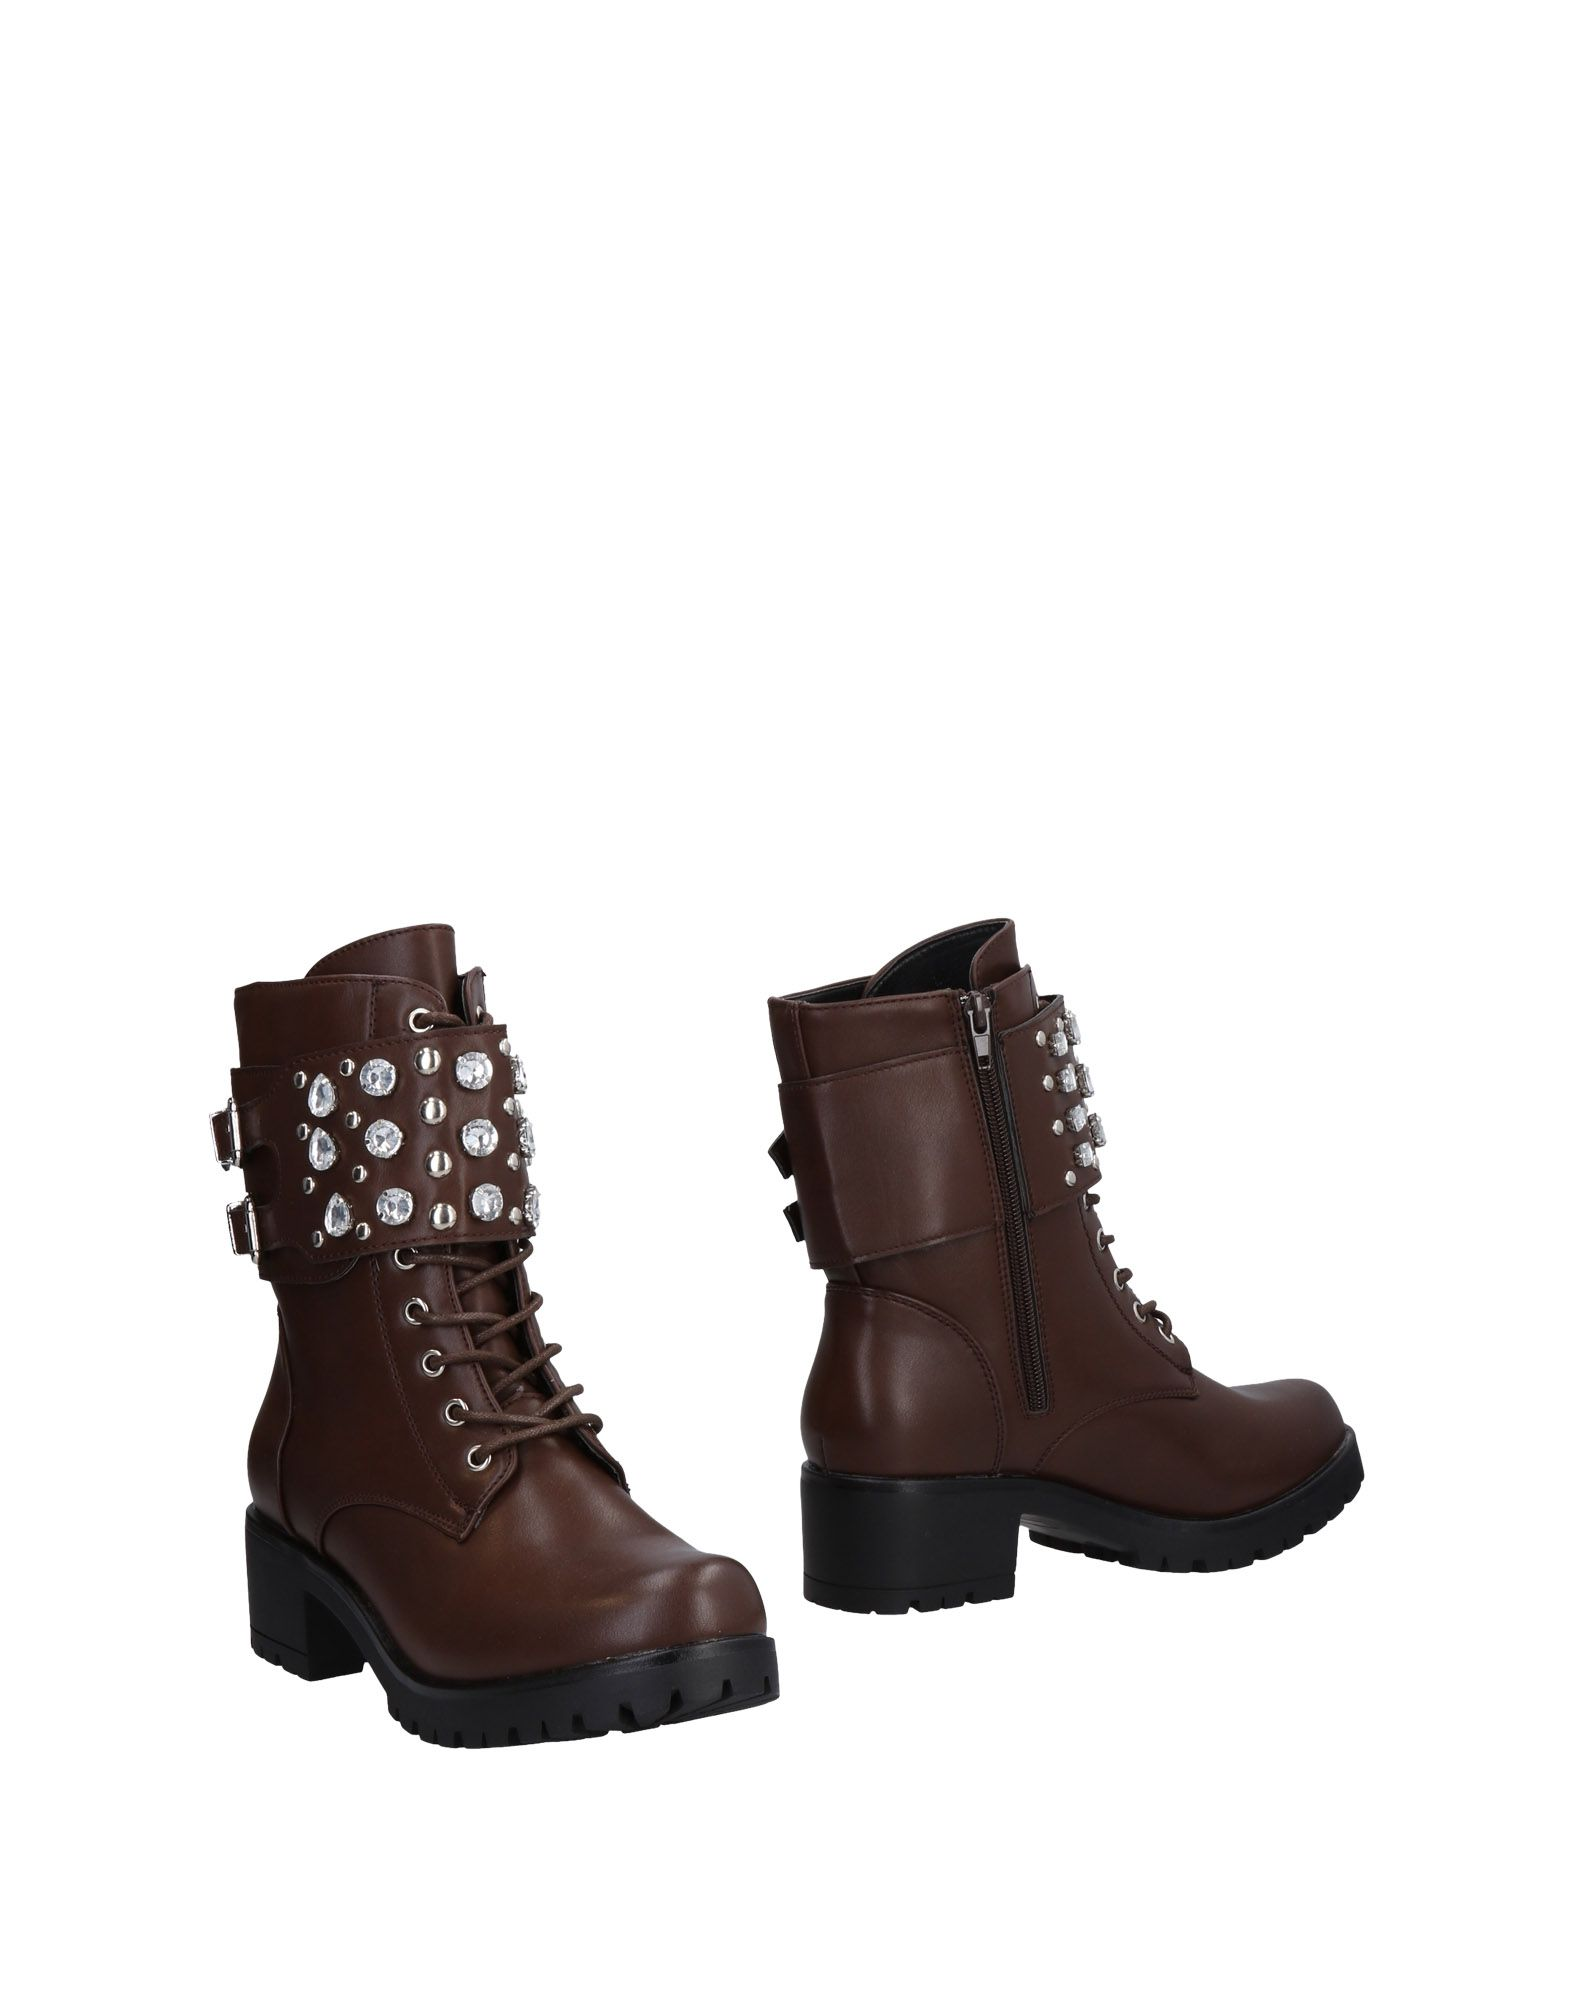 CHAUSSURES - BottinesSEXY WOMAN Xbb1c8a5